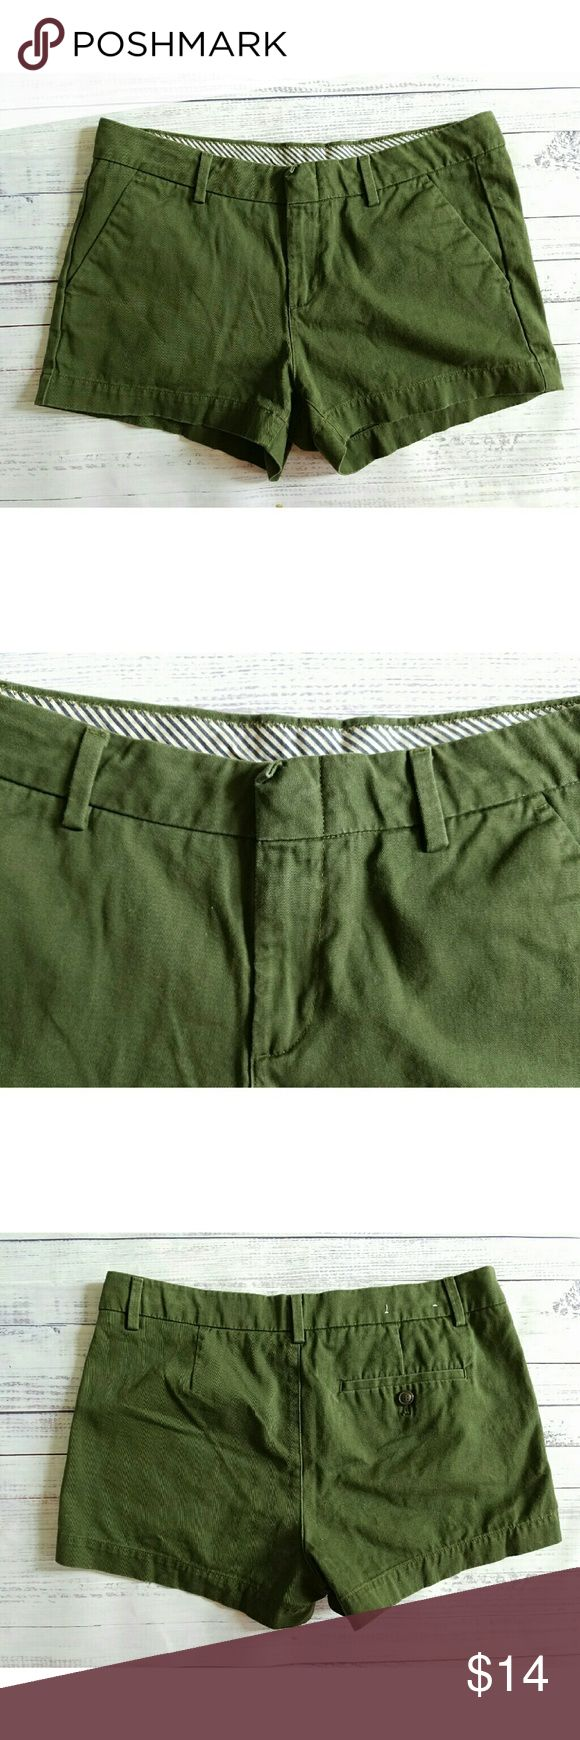 Army green canvas shorts Iightly worn, olive green 16.5 inch waist while flat 2.75 inch inseam 9.5 inch rise Uniqlo Shorts